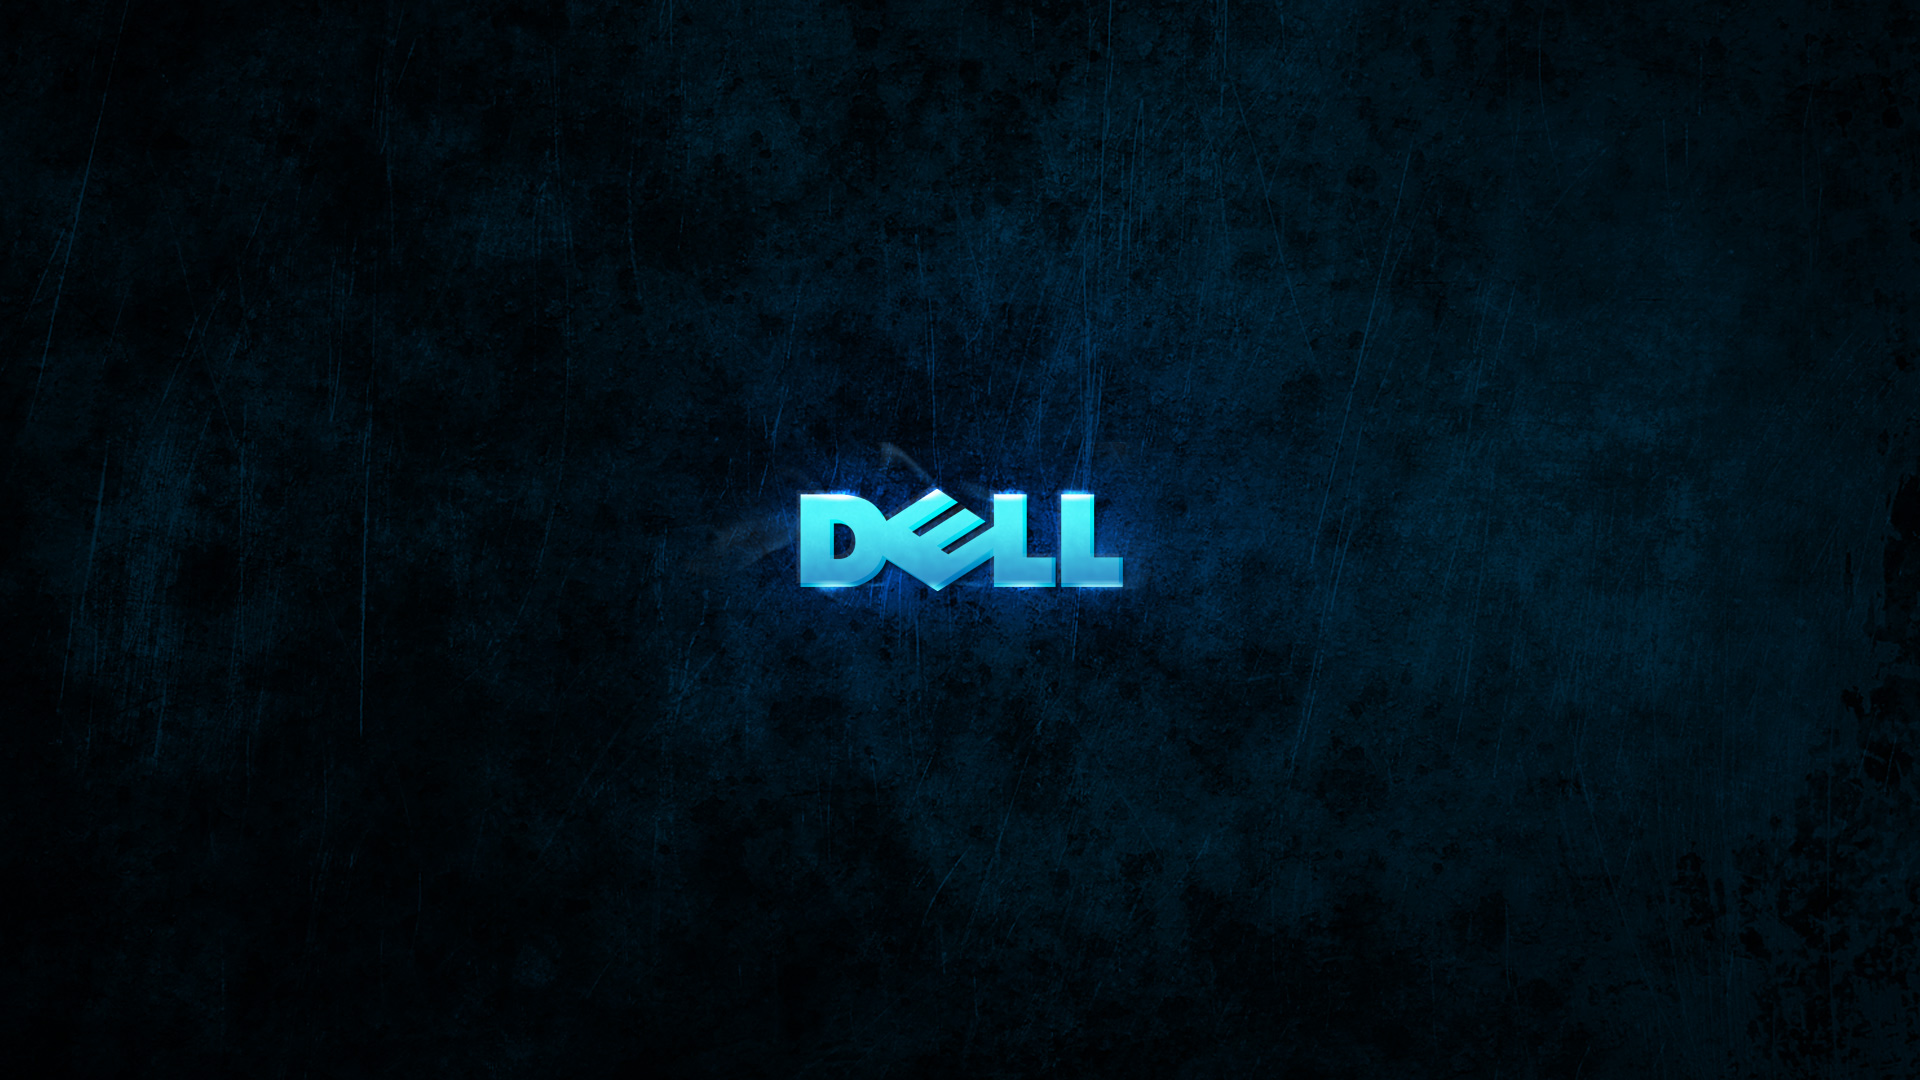 Dell Dark Wallpaper HD1080 by malkowitch